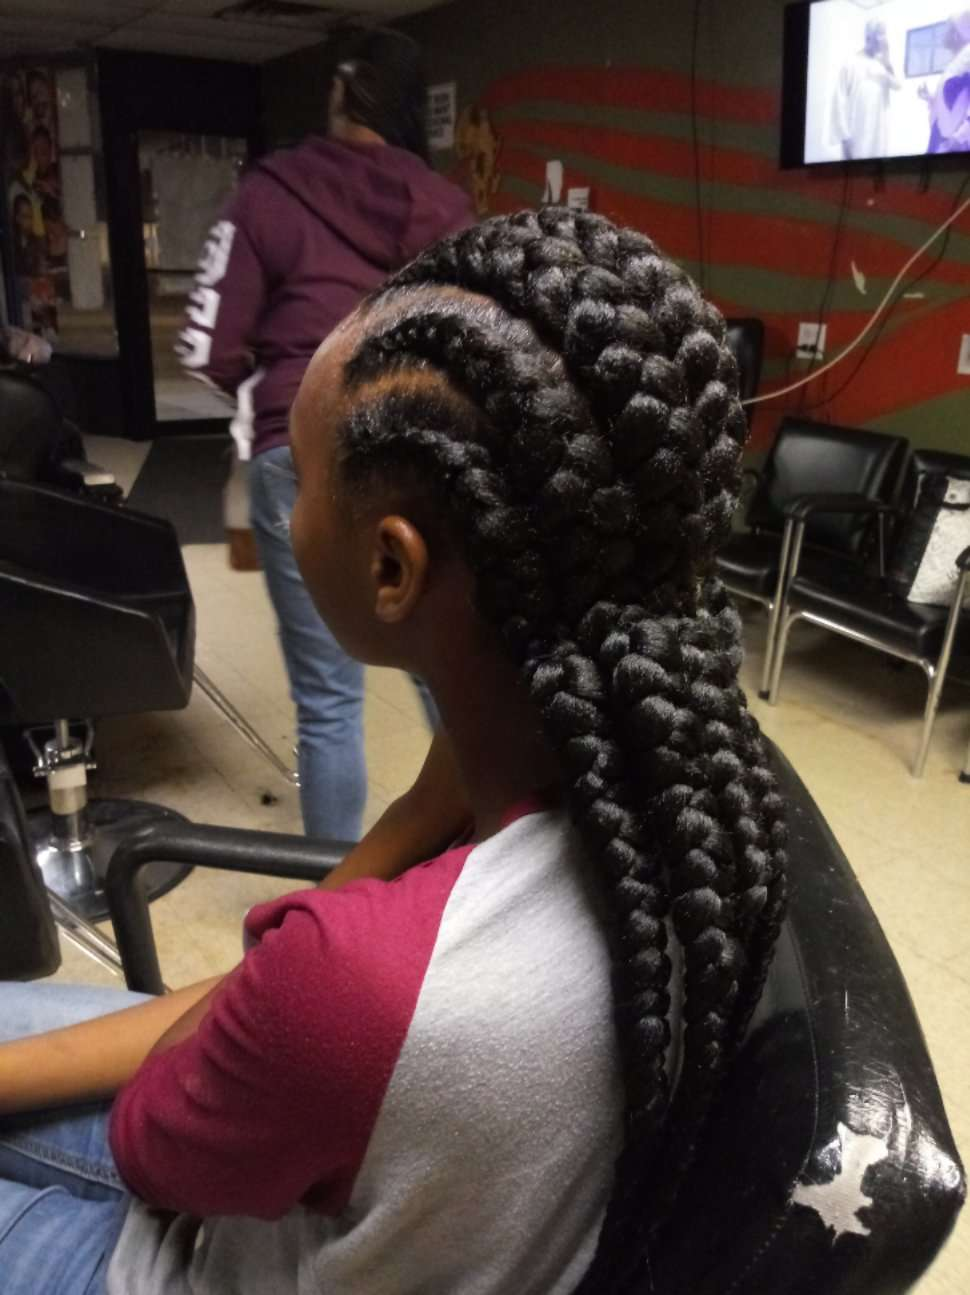 Manoro's African Hair Braiding - hair care  | Photo 7 of 10 | Address: 6454 S Cottage Grove Ave, Chicago, IL 60637, USA | Phone: (773) 667-8886